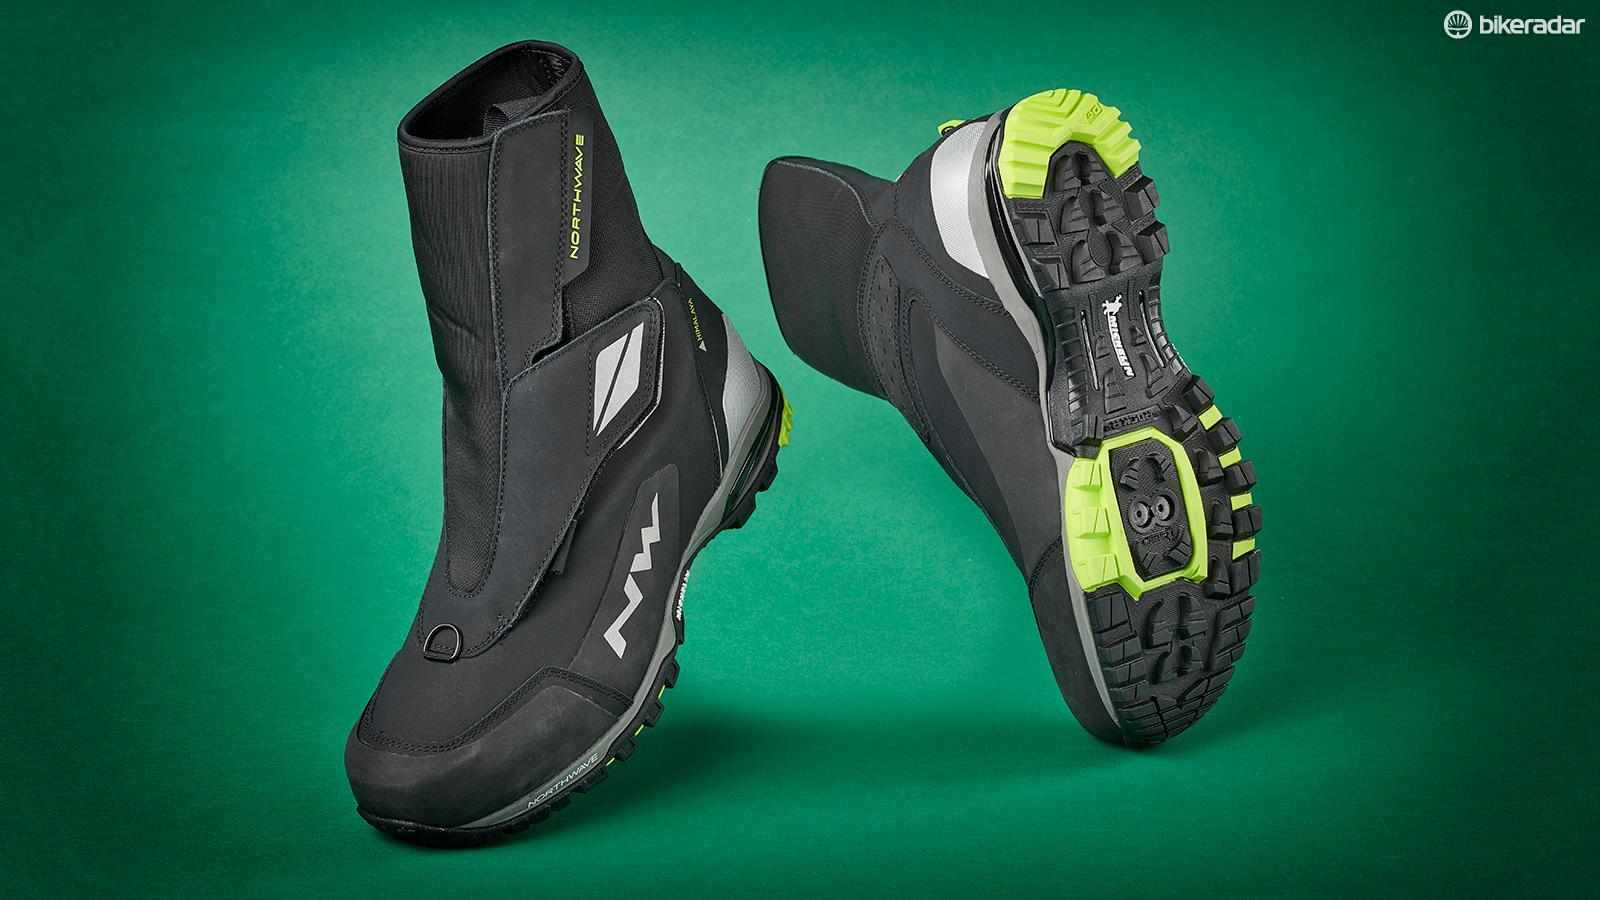 The Himalayas not only keep your feet dry and warm they also give extreme protection